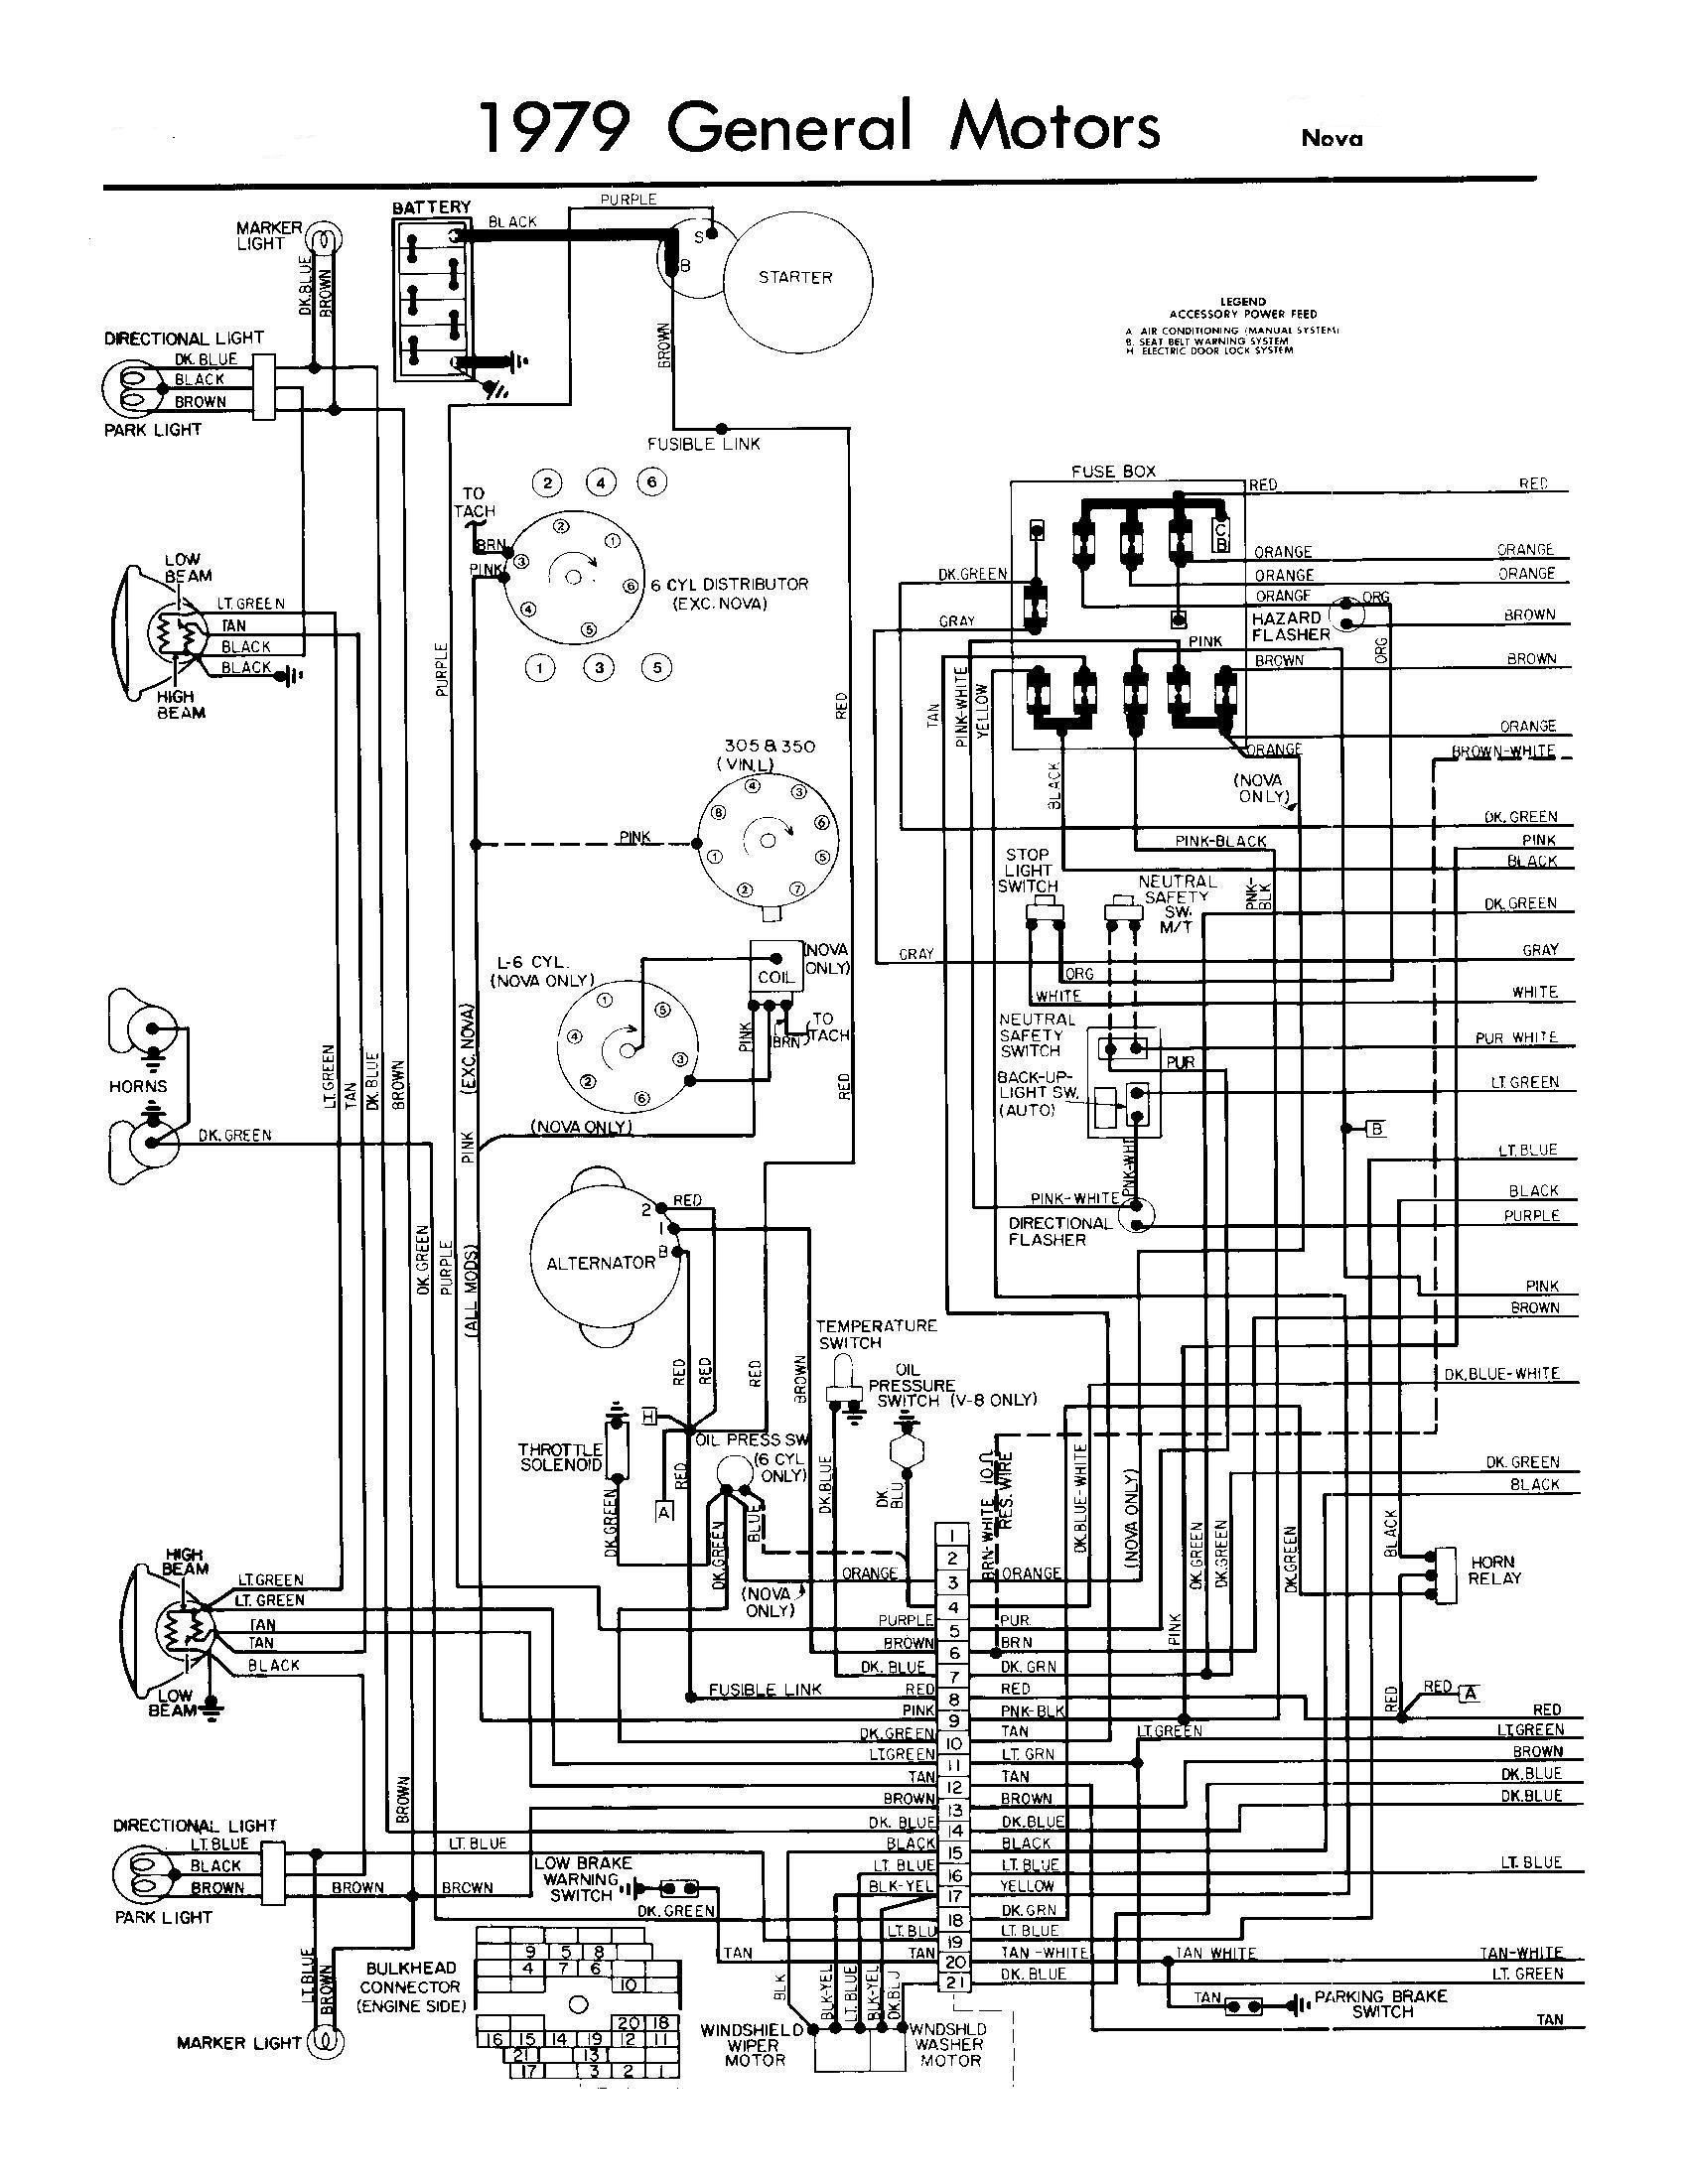 1959 Gmc Truck Electrical Wiring Diagrams Start Building A 2002 93 Gm Diagram Schematic Rh Macro Program Com 1994